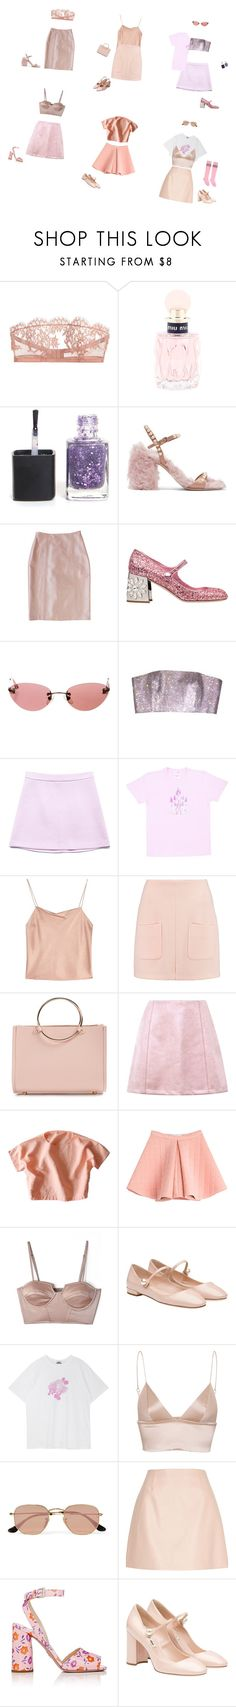 """what a squad part IV"" by whatevenisfashion ❤ liked on Polyvore featuring I.D. SARRIERI, Miu Miu, Plakinger, Chanel, Forever 21, Alice + Olivia, See by Chloé, Future Glory Co., Marina Hoermanseder and Shakuhachi"